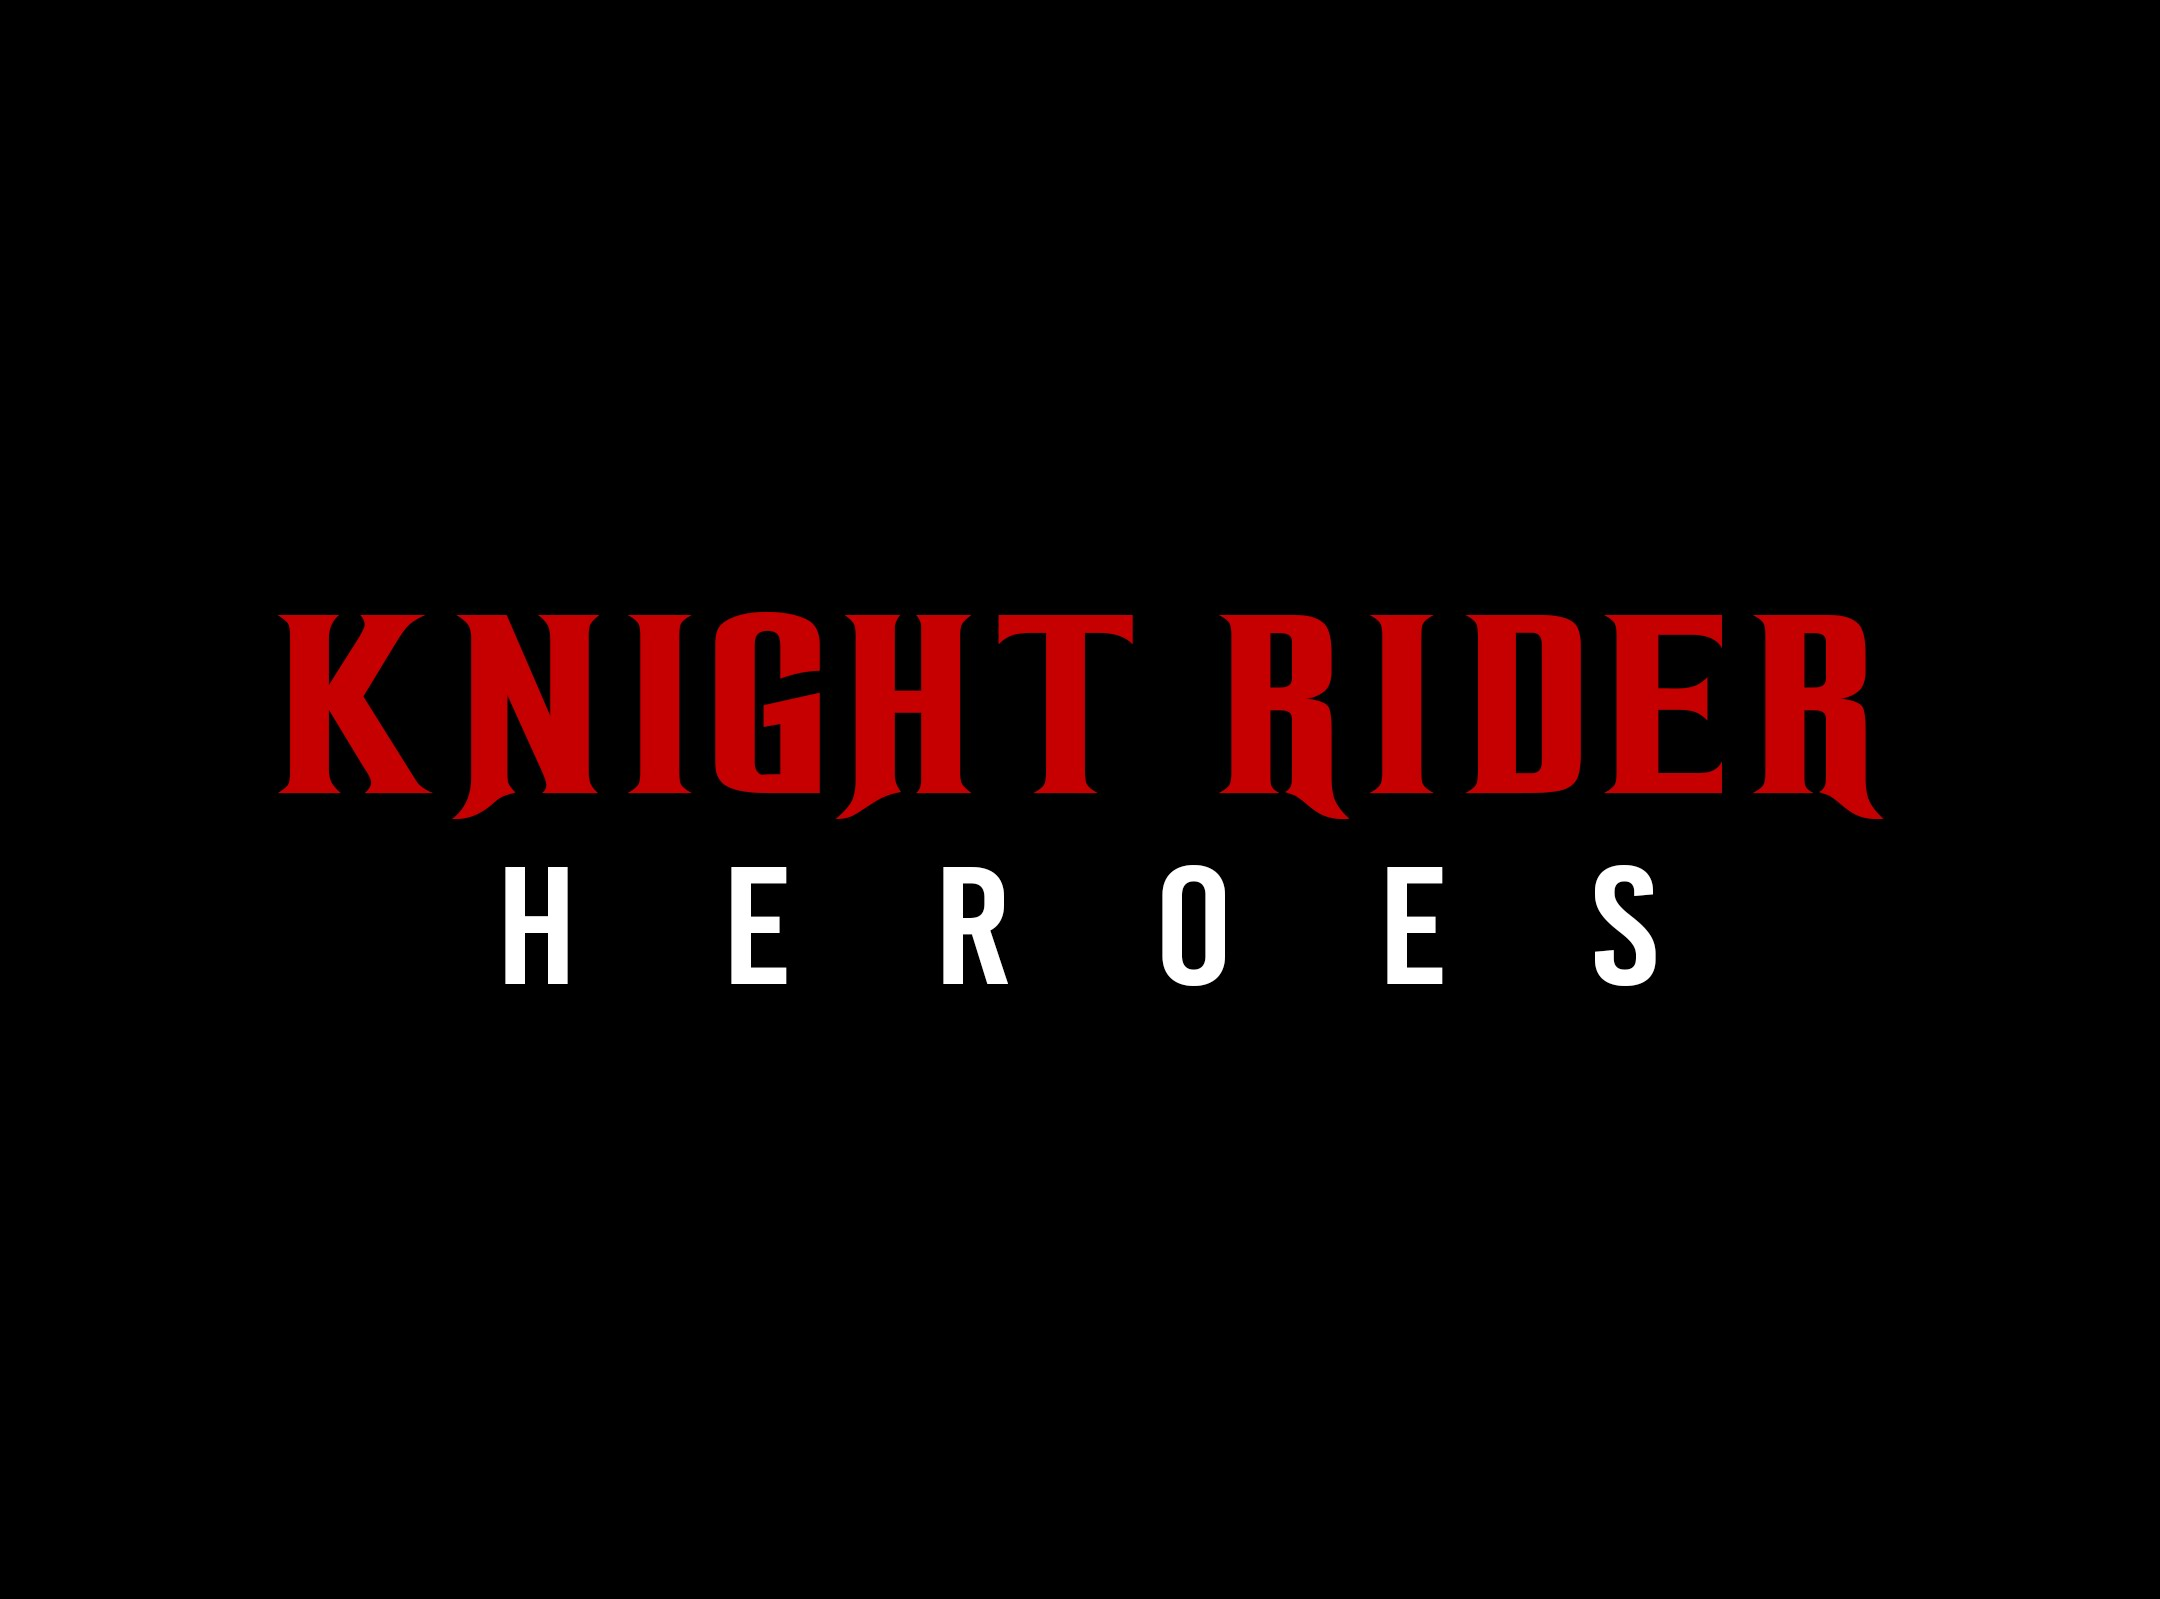 KNIGHT RIDER HEROES - OFFICIAL TRAILER - DAVID HASSELHOFF